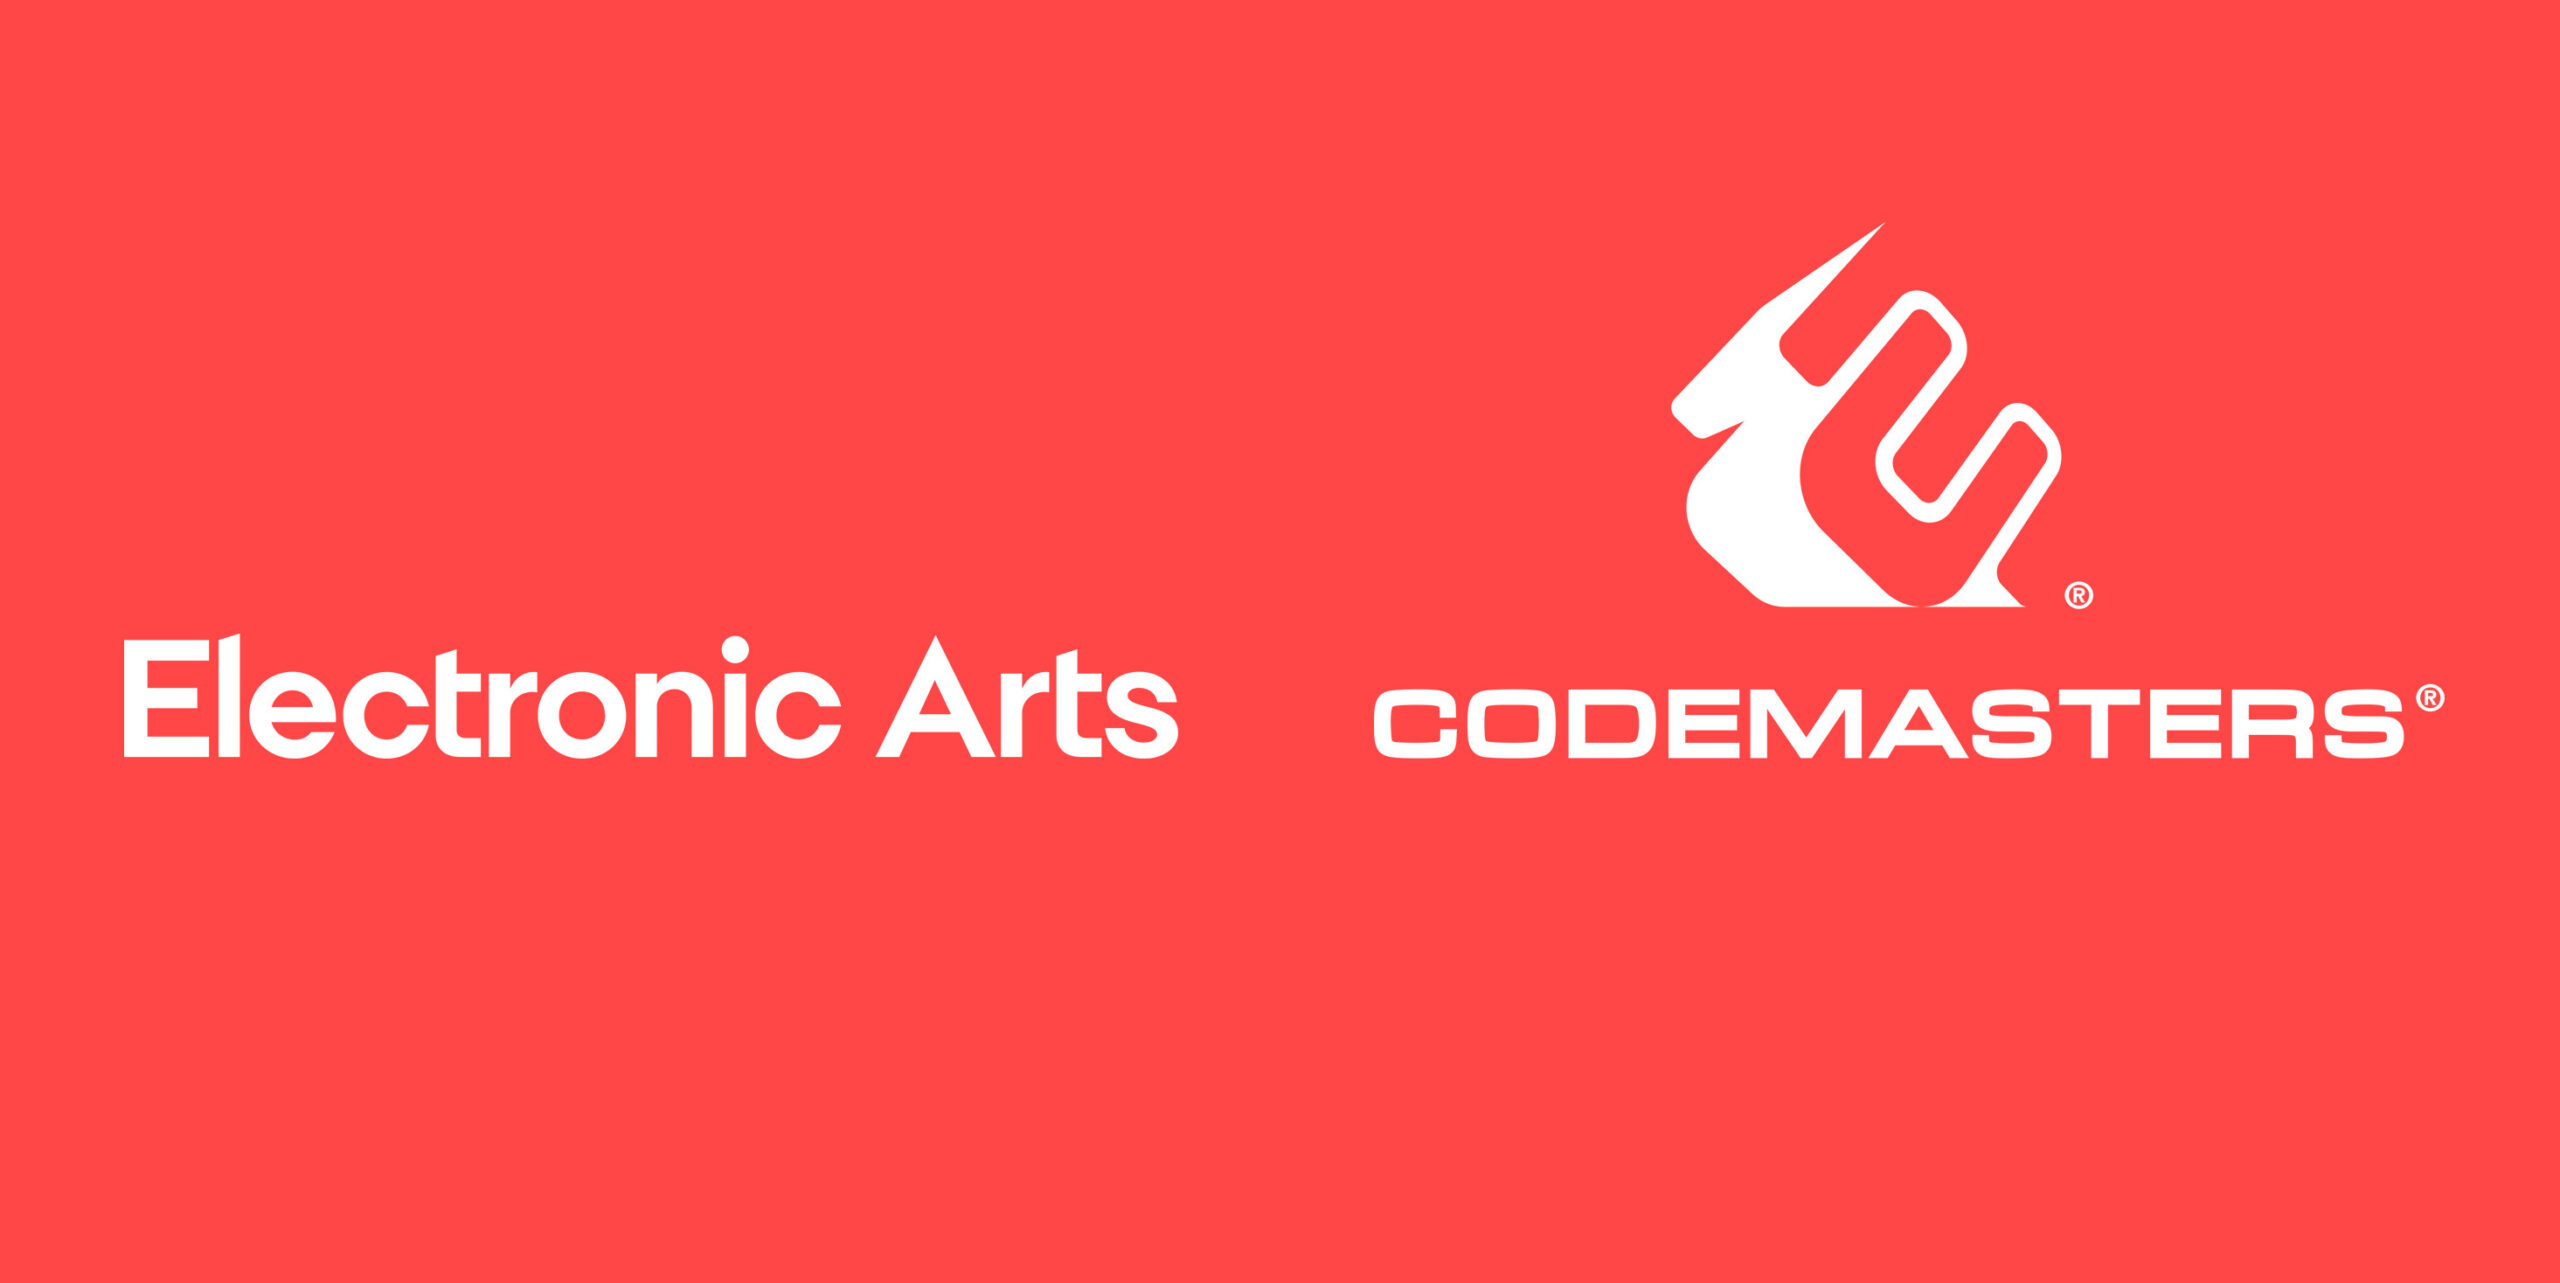 EA purchases Codemasters